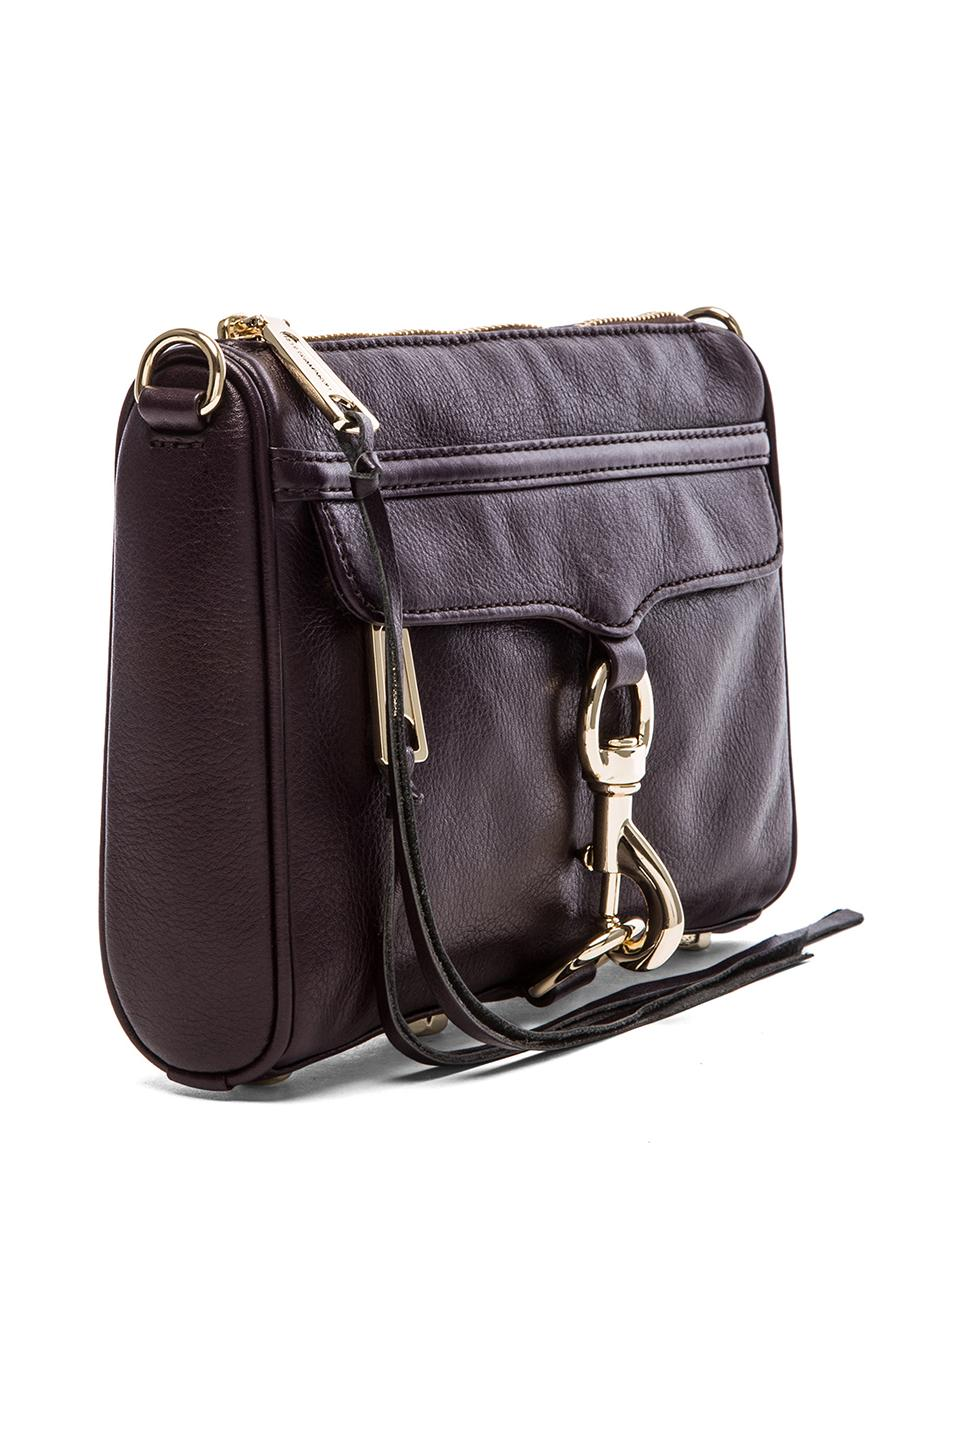 Rebecca Minkoff Mini MAC in Black Cherry from REVOLVEclothing.com